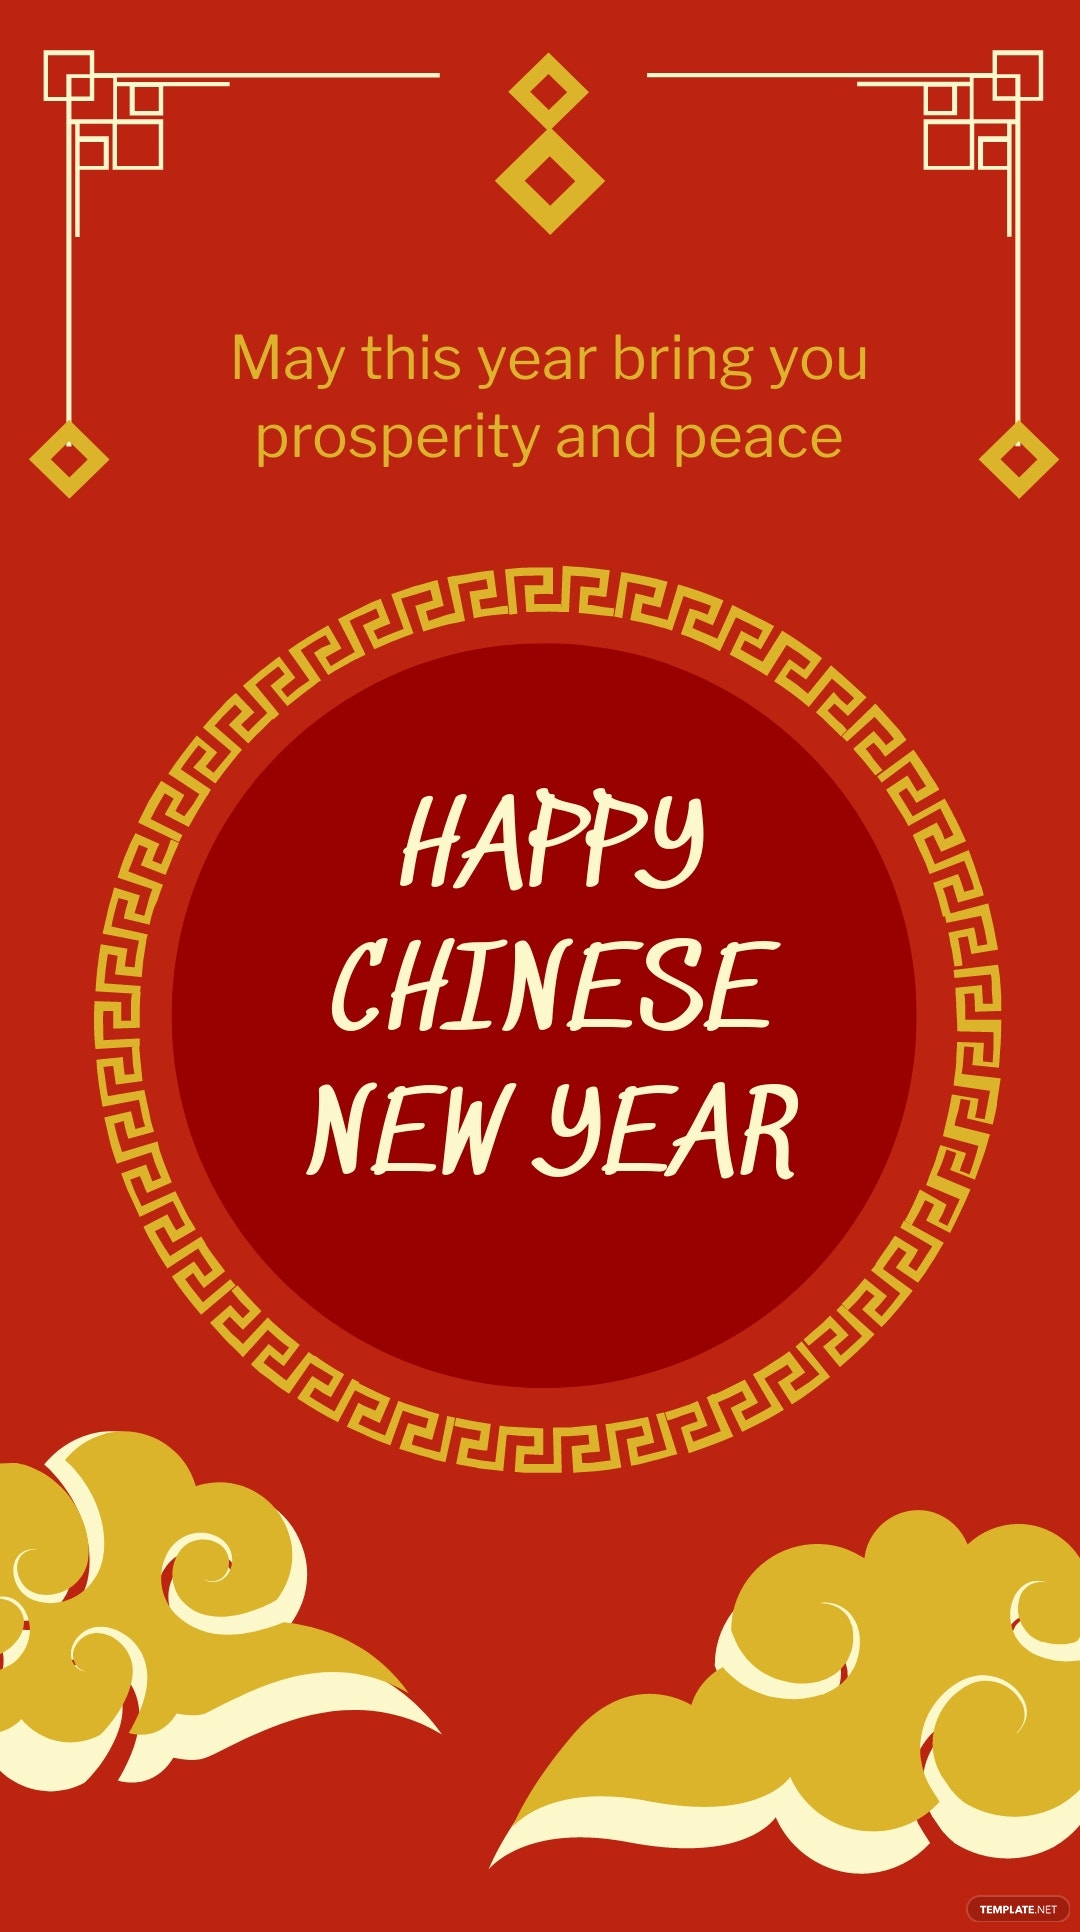 Vintage Chinese New Year Instagram Story Template 4.jpe